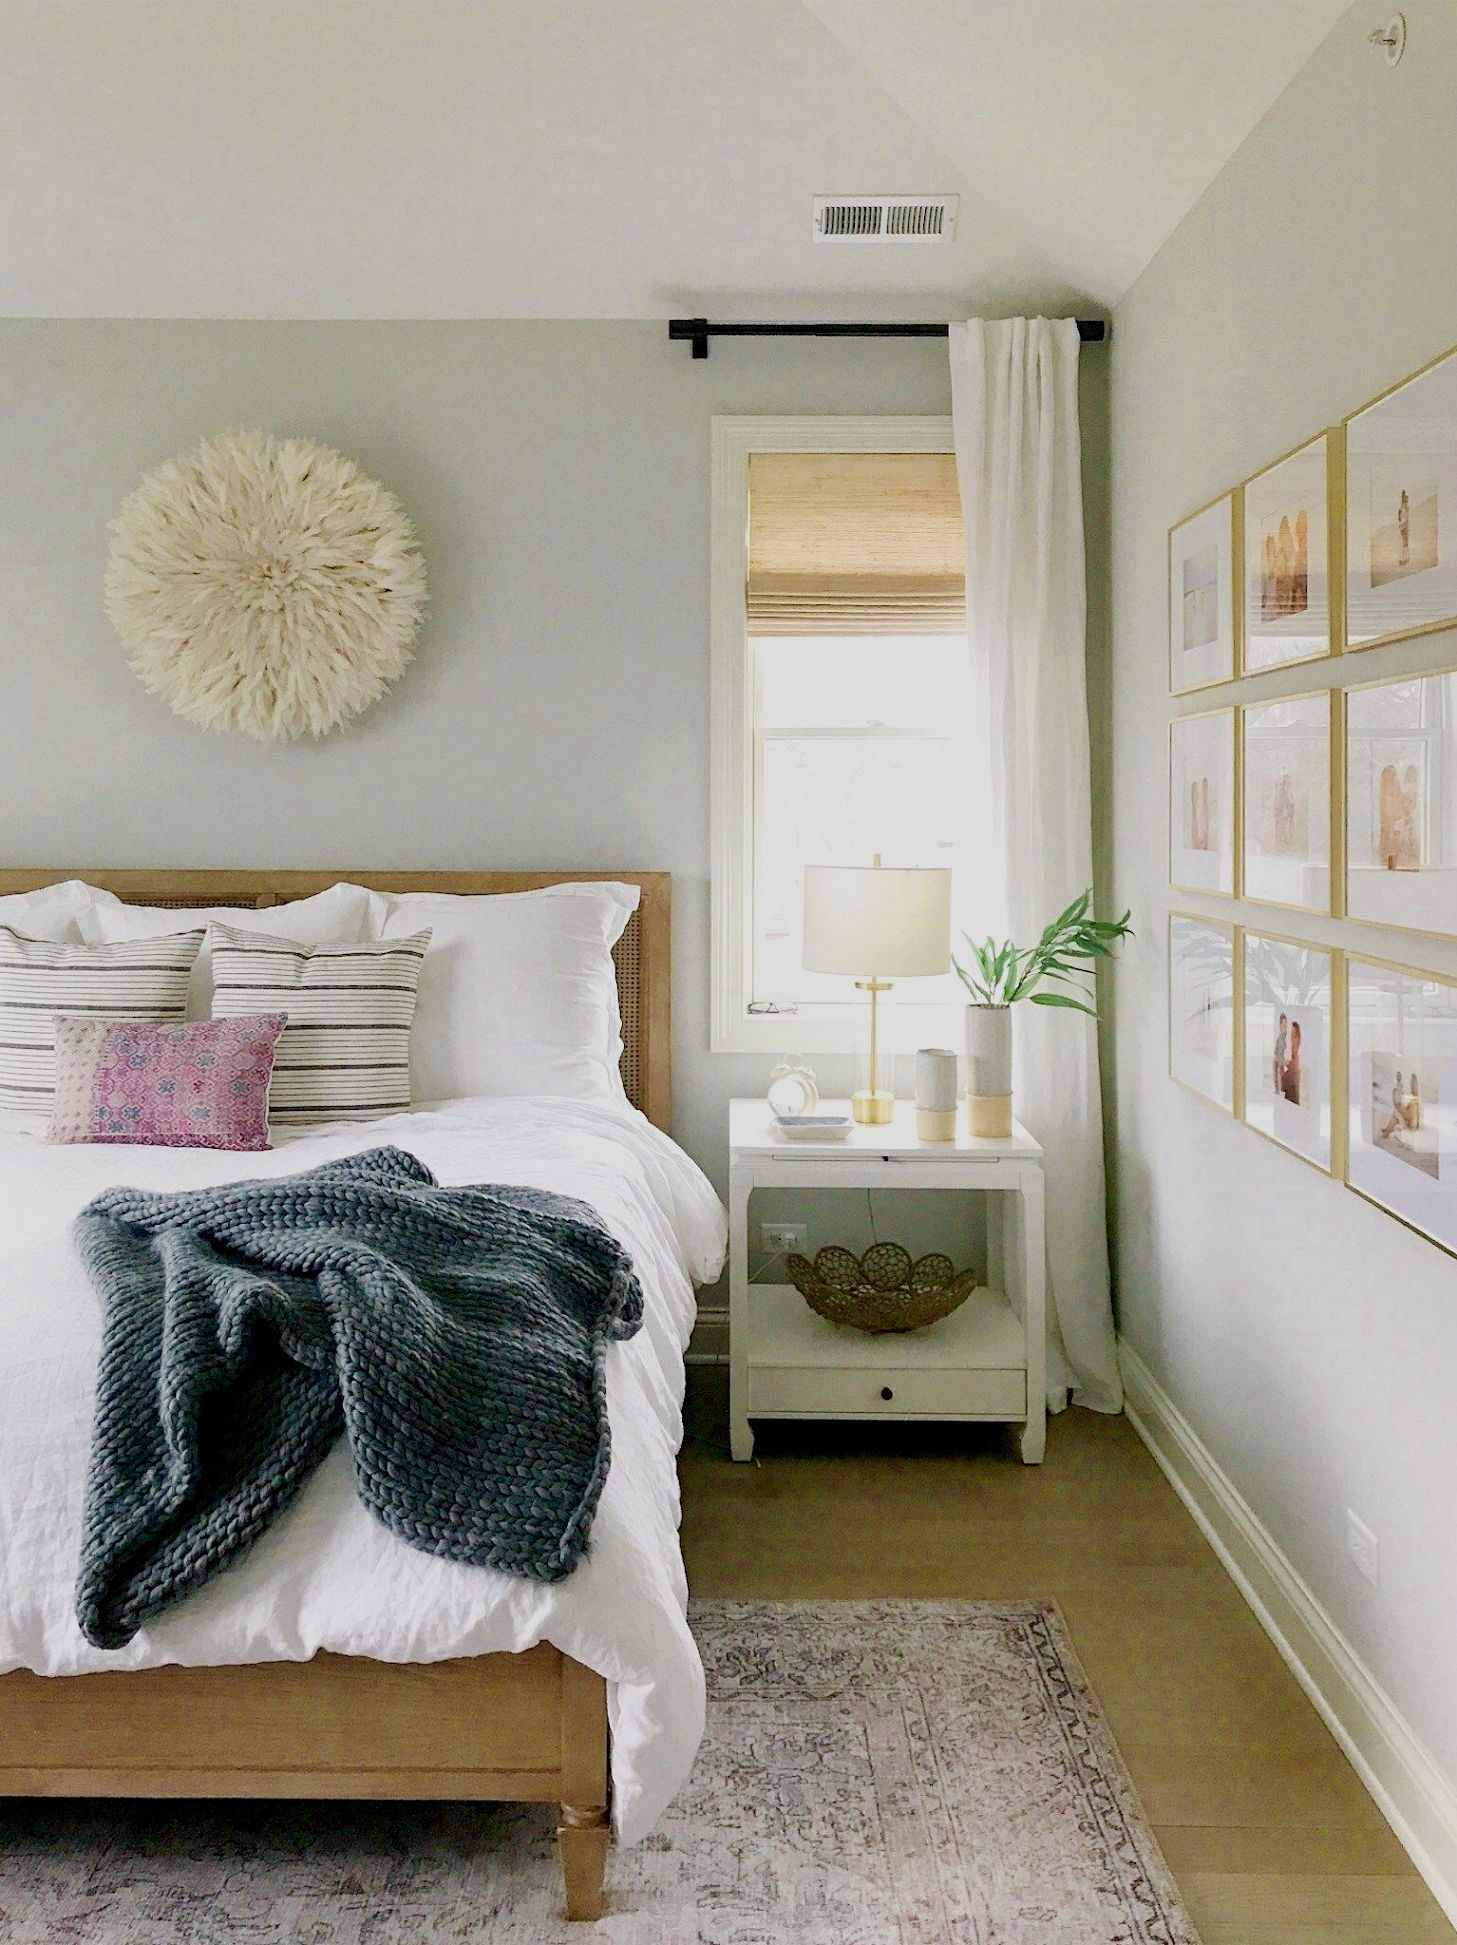 Bedroom Decor Hacks The Quantity Of Light In The Room Or Area Plays A Huge Role In Most Interior Desi Remodel Bedroom Beautiful Bedrooms Small Bedroom Remodel